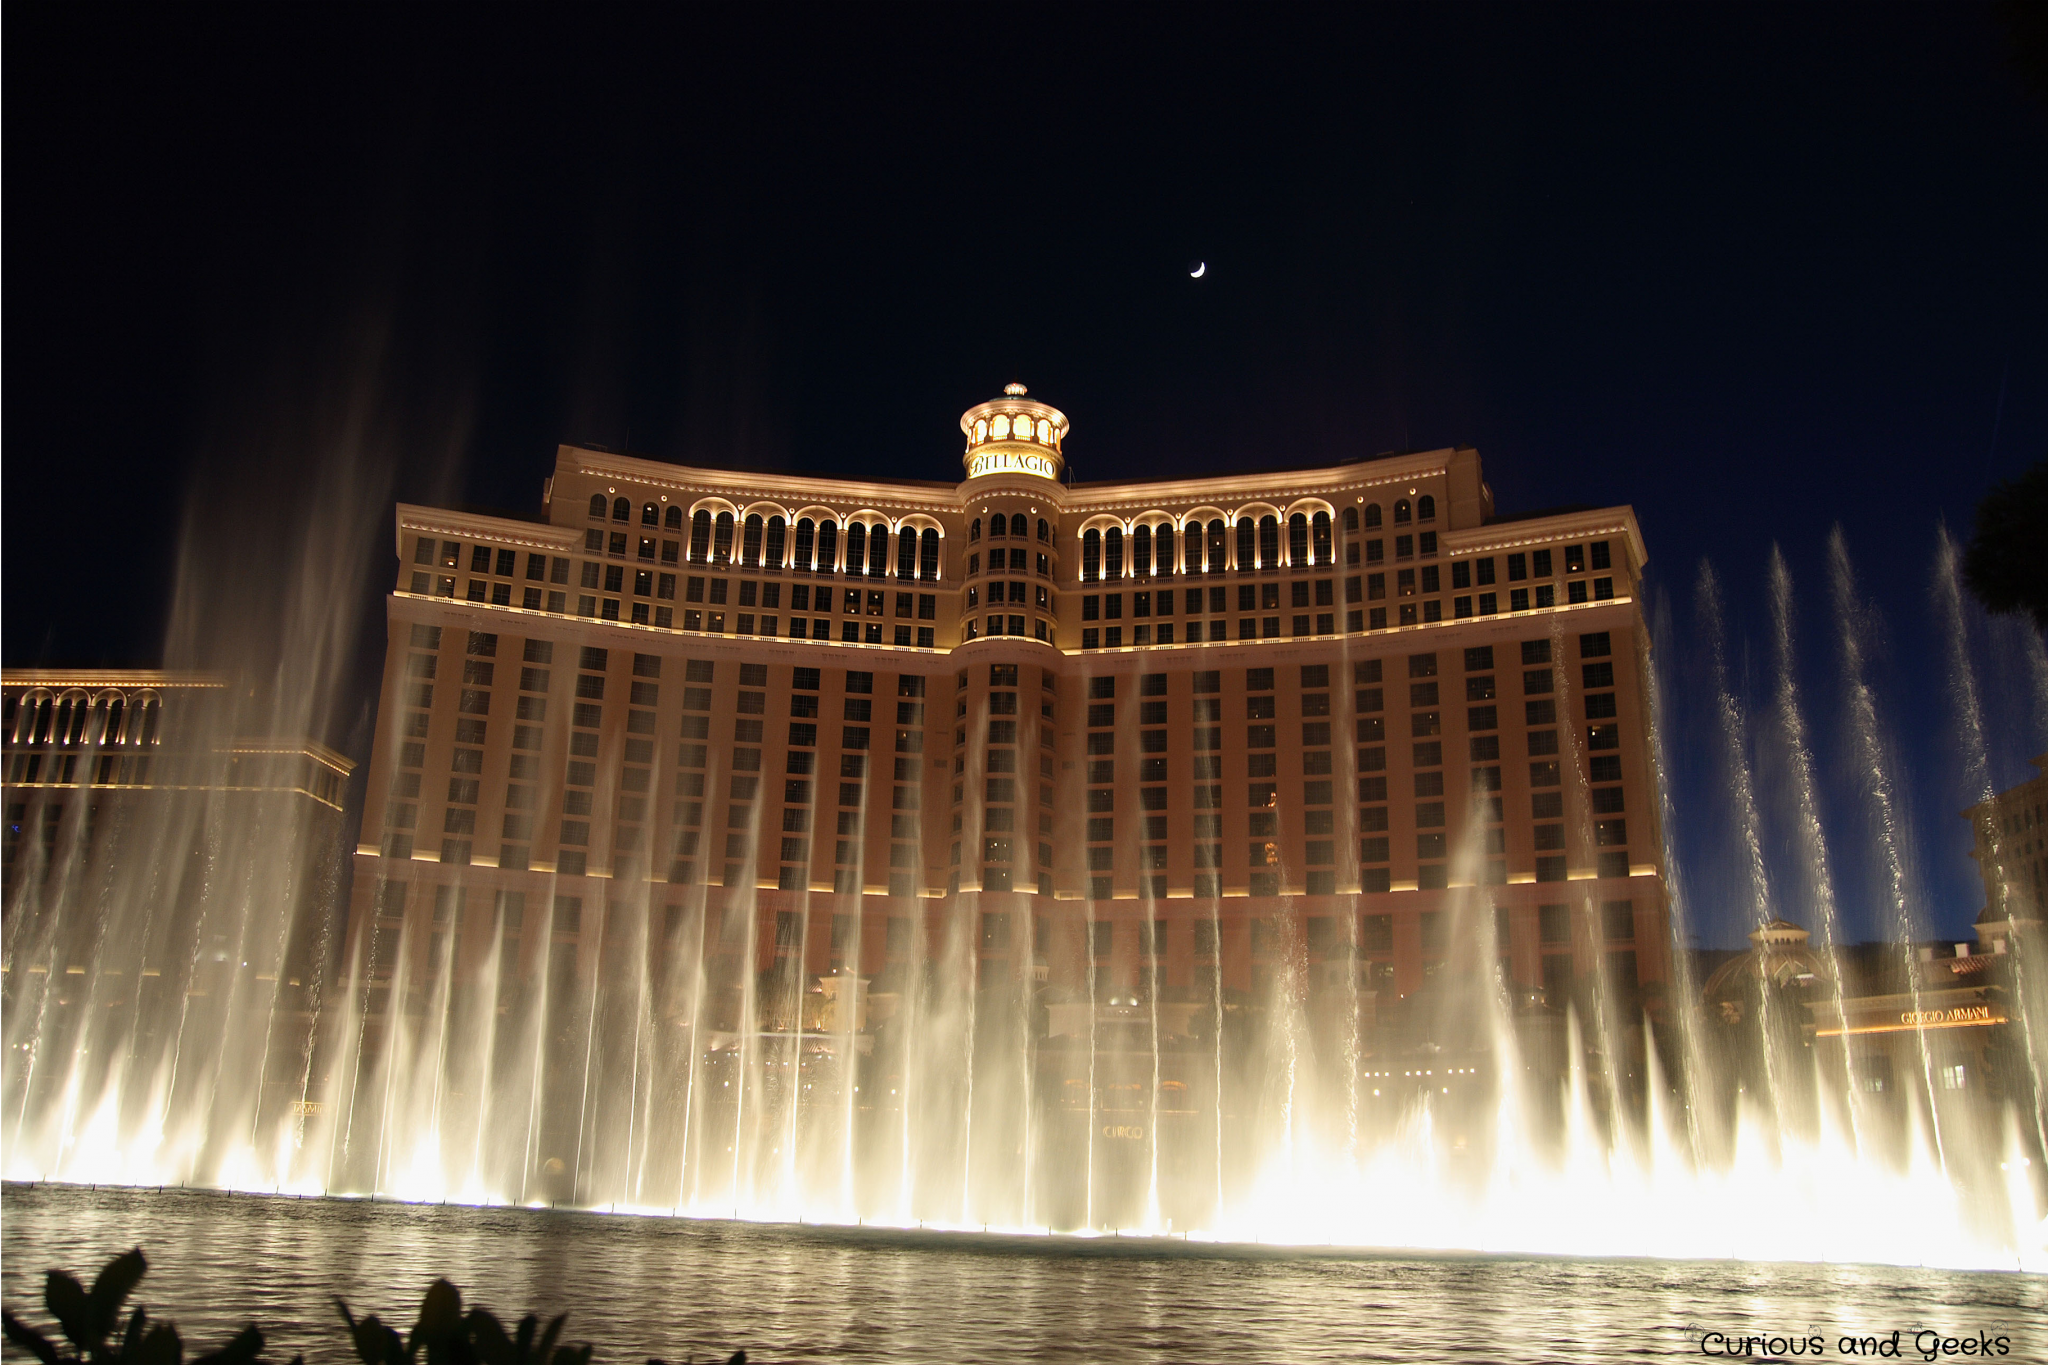 View of the Bellagio in Las Vegas